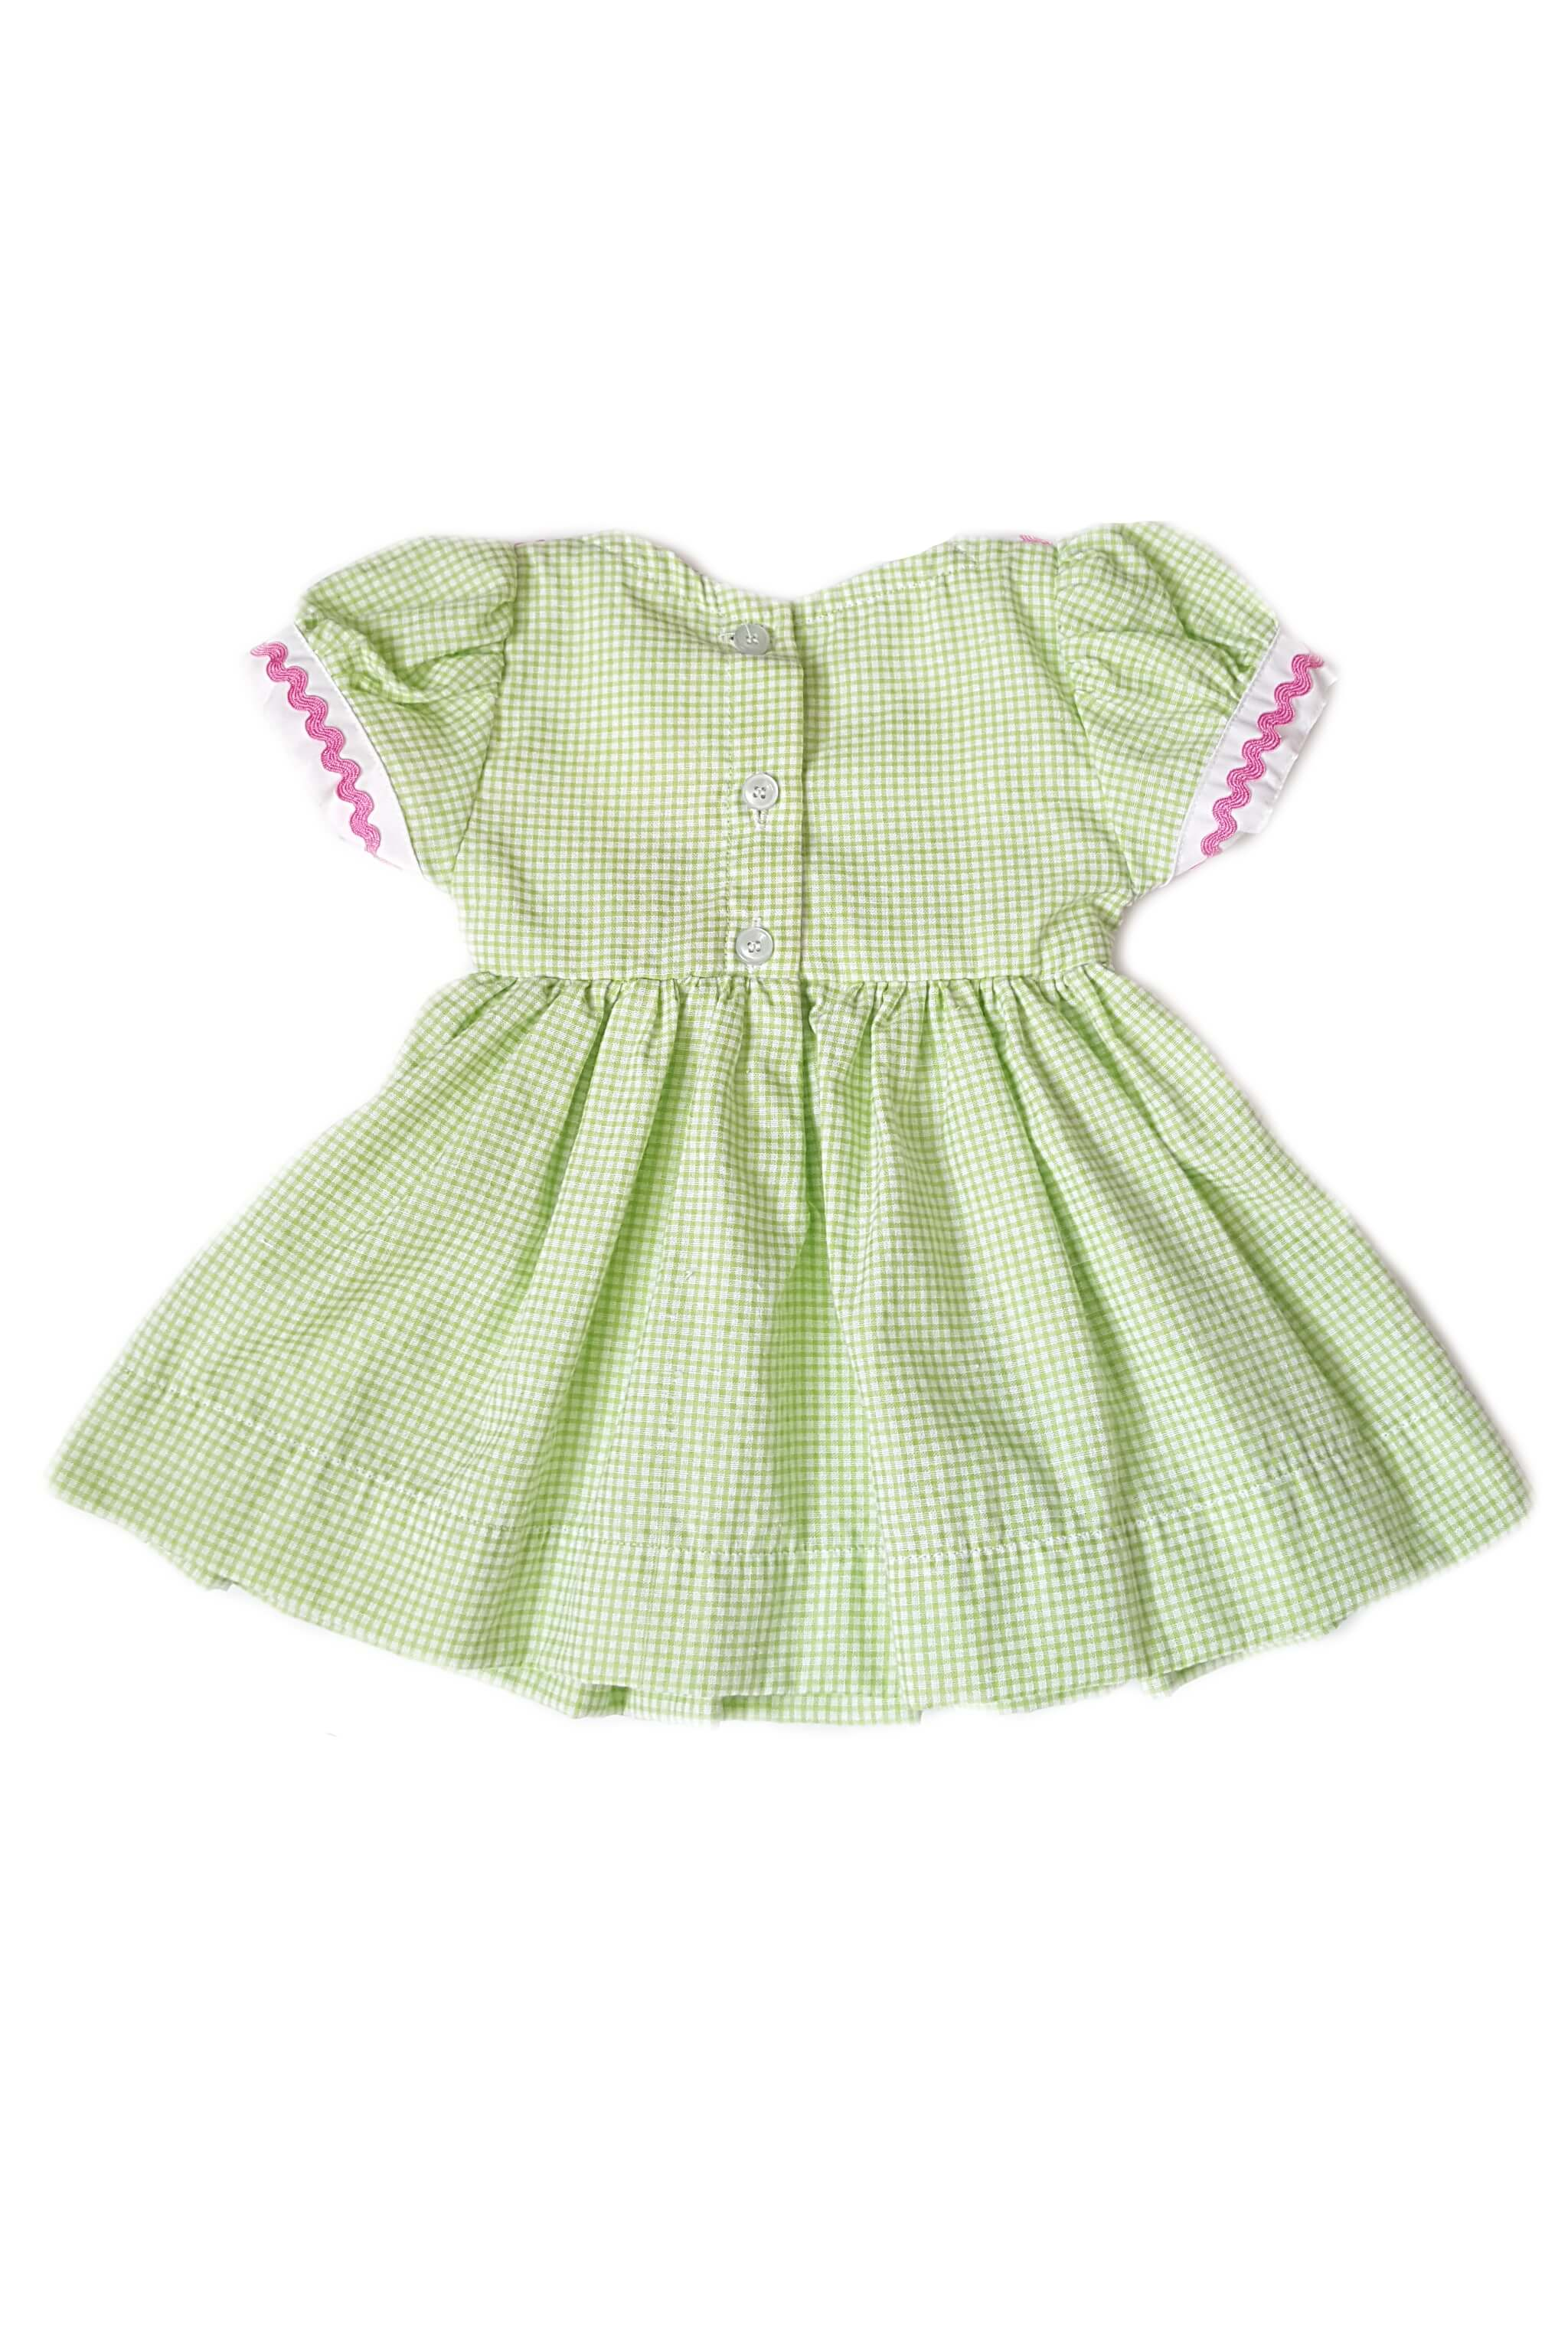 Back of sage green dress with hand-smocked bodice and contrasting white sailor collar with button back for baby girls